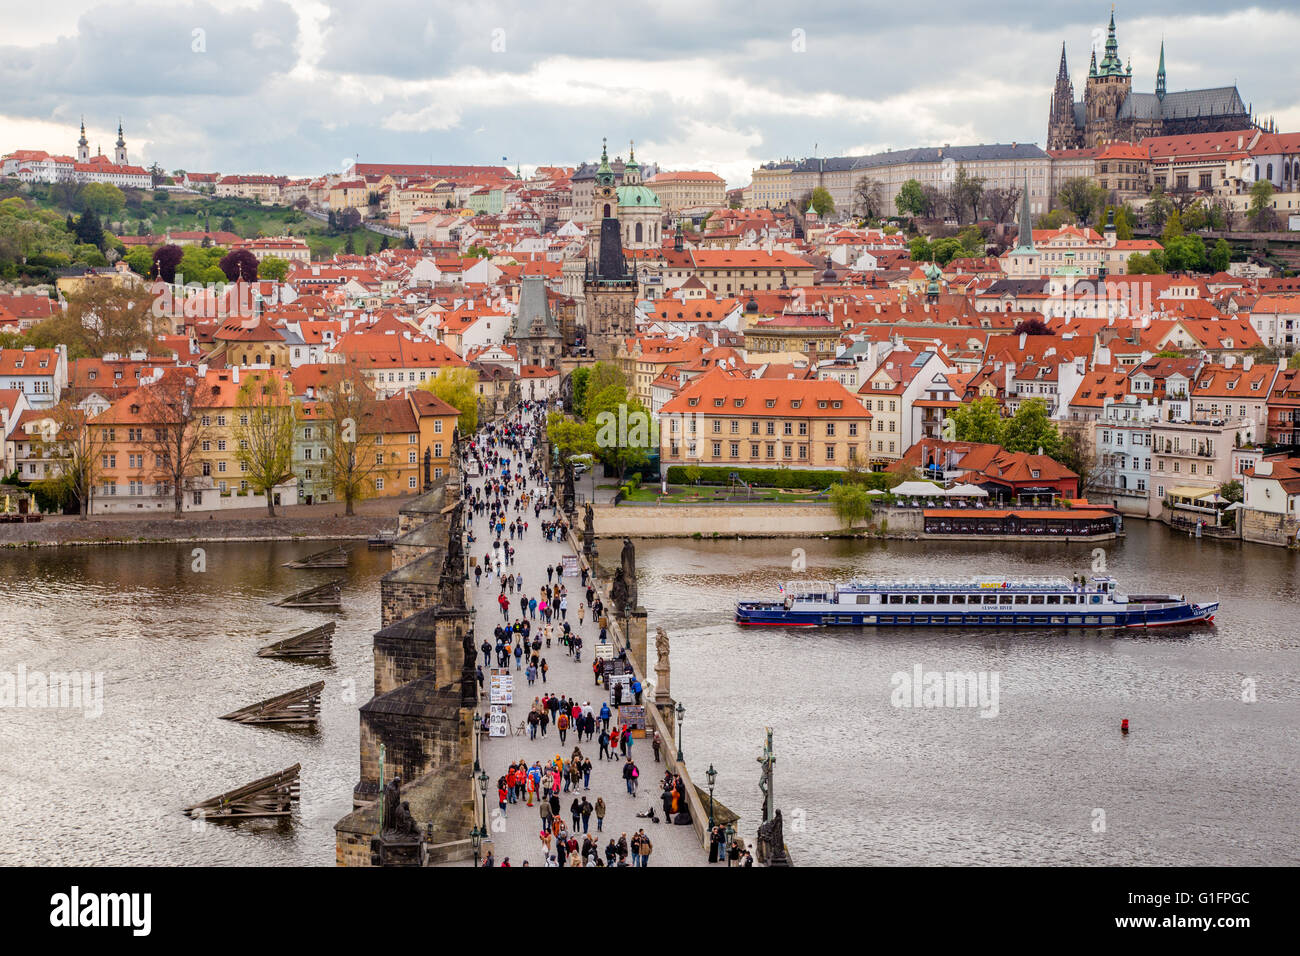 The Charles Bridge crossing the Vltava river and the St Vitus cathedral in Prague, Czech Republic - Stock Image